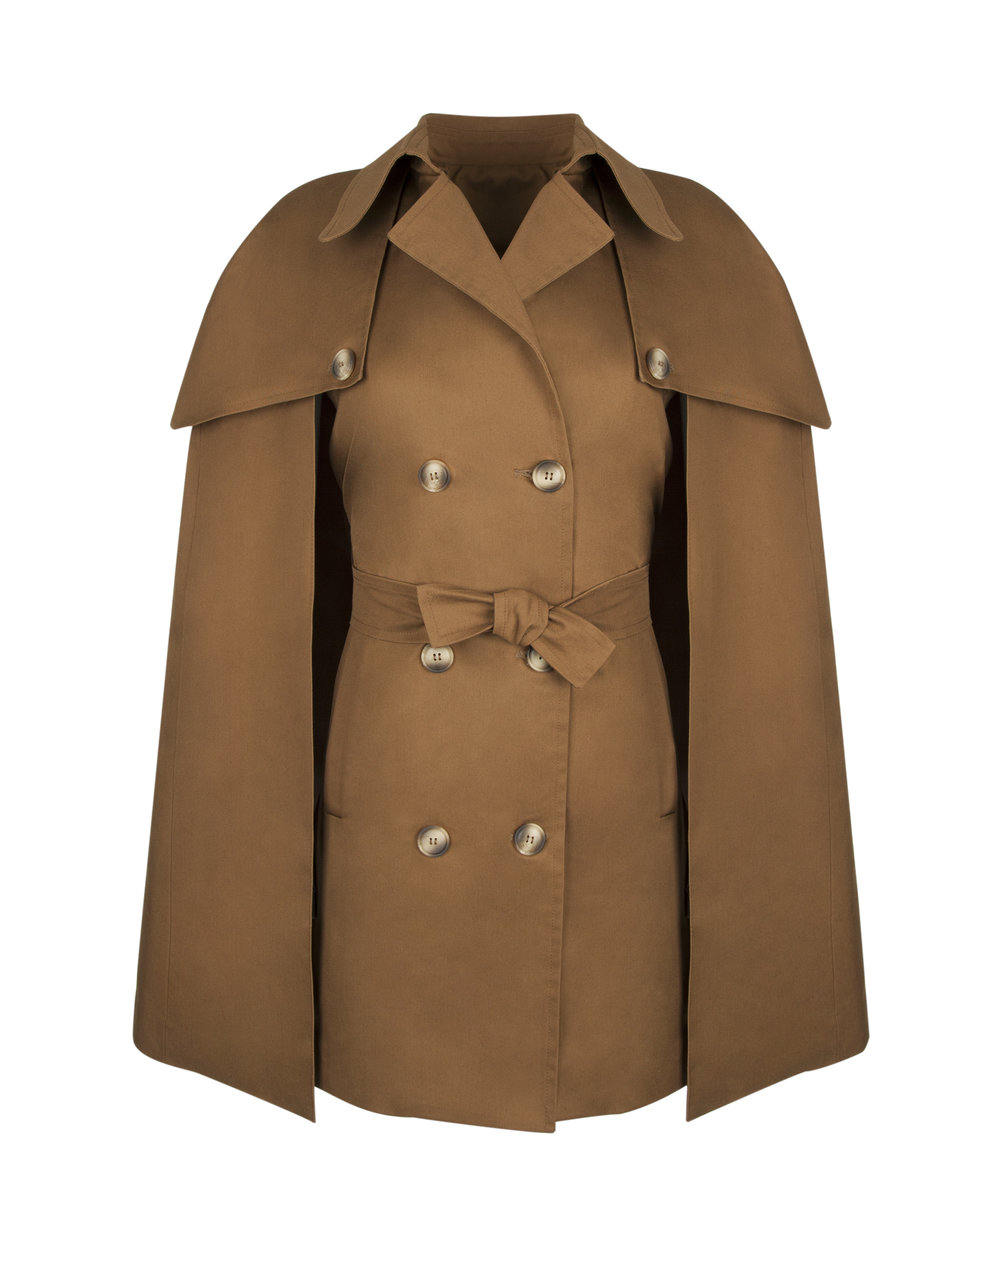 final Brown coat FRONT .jpg